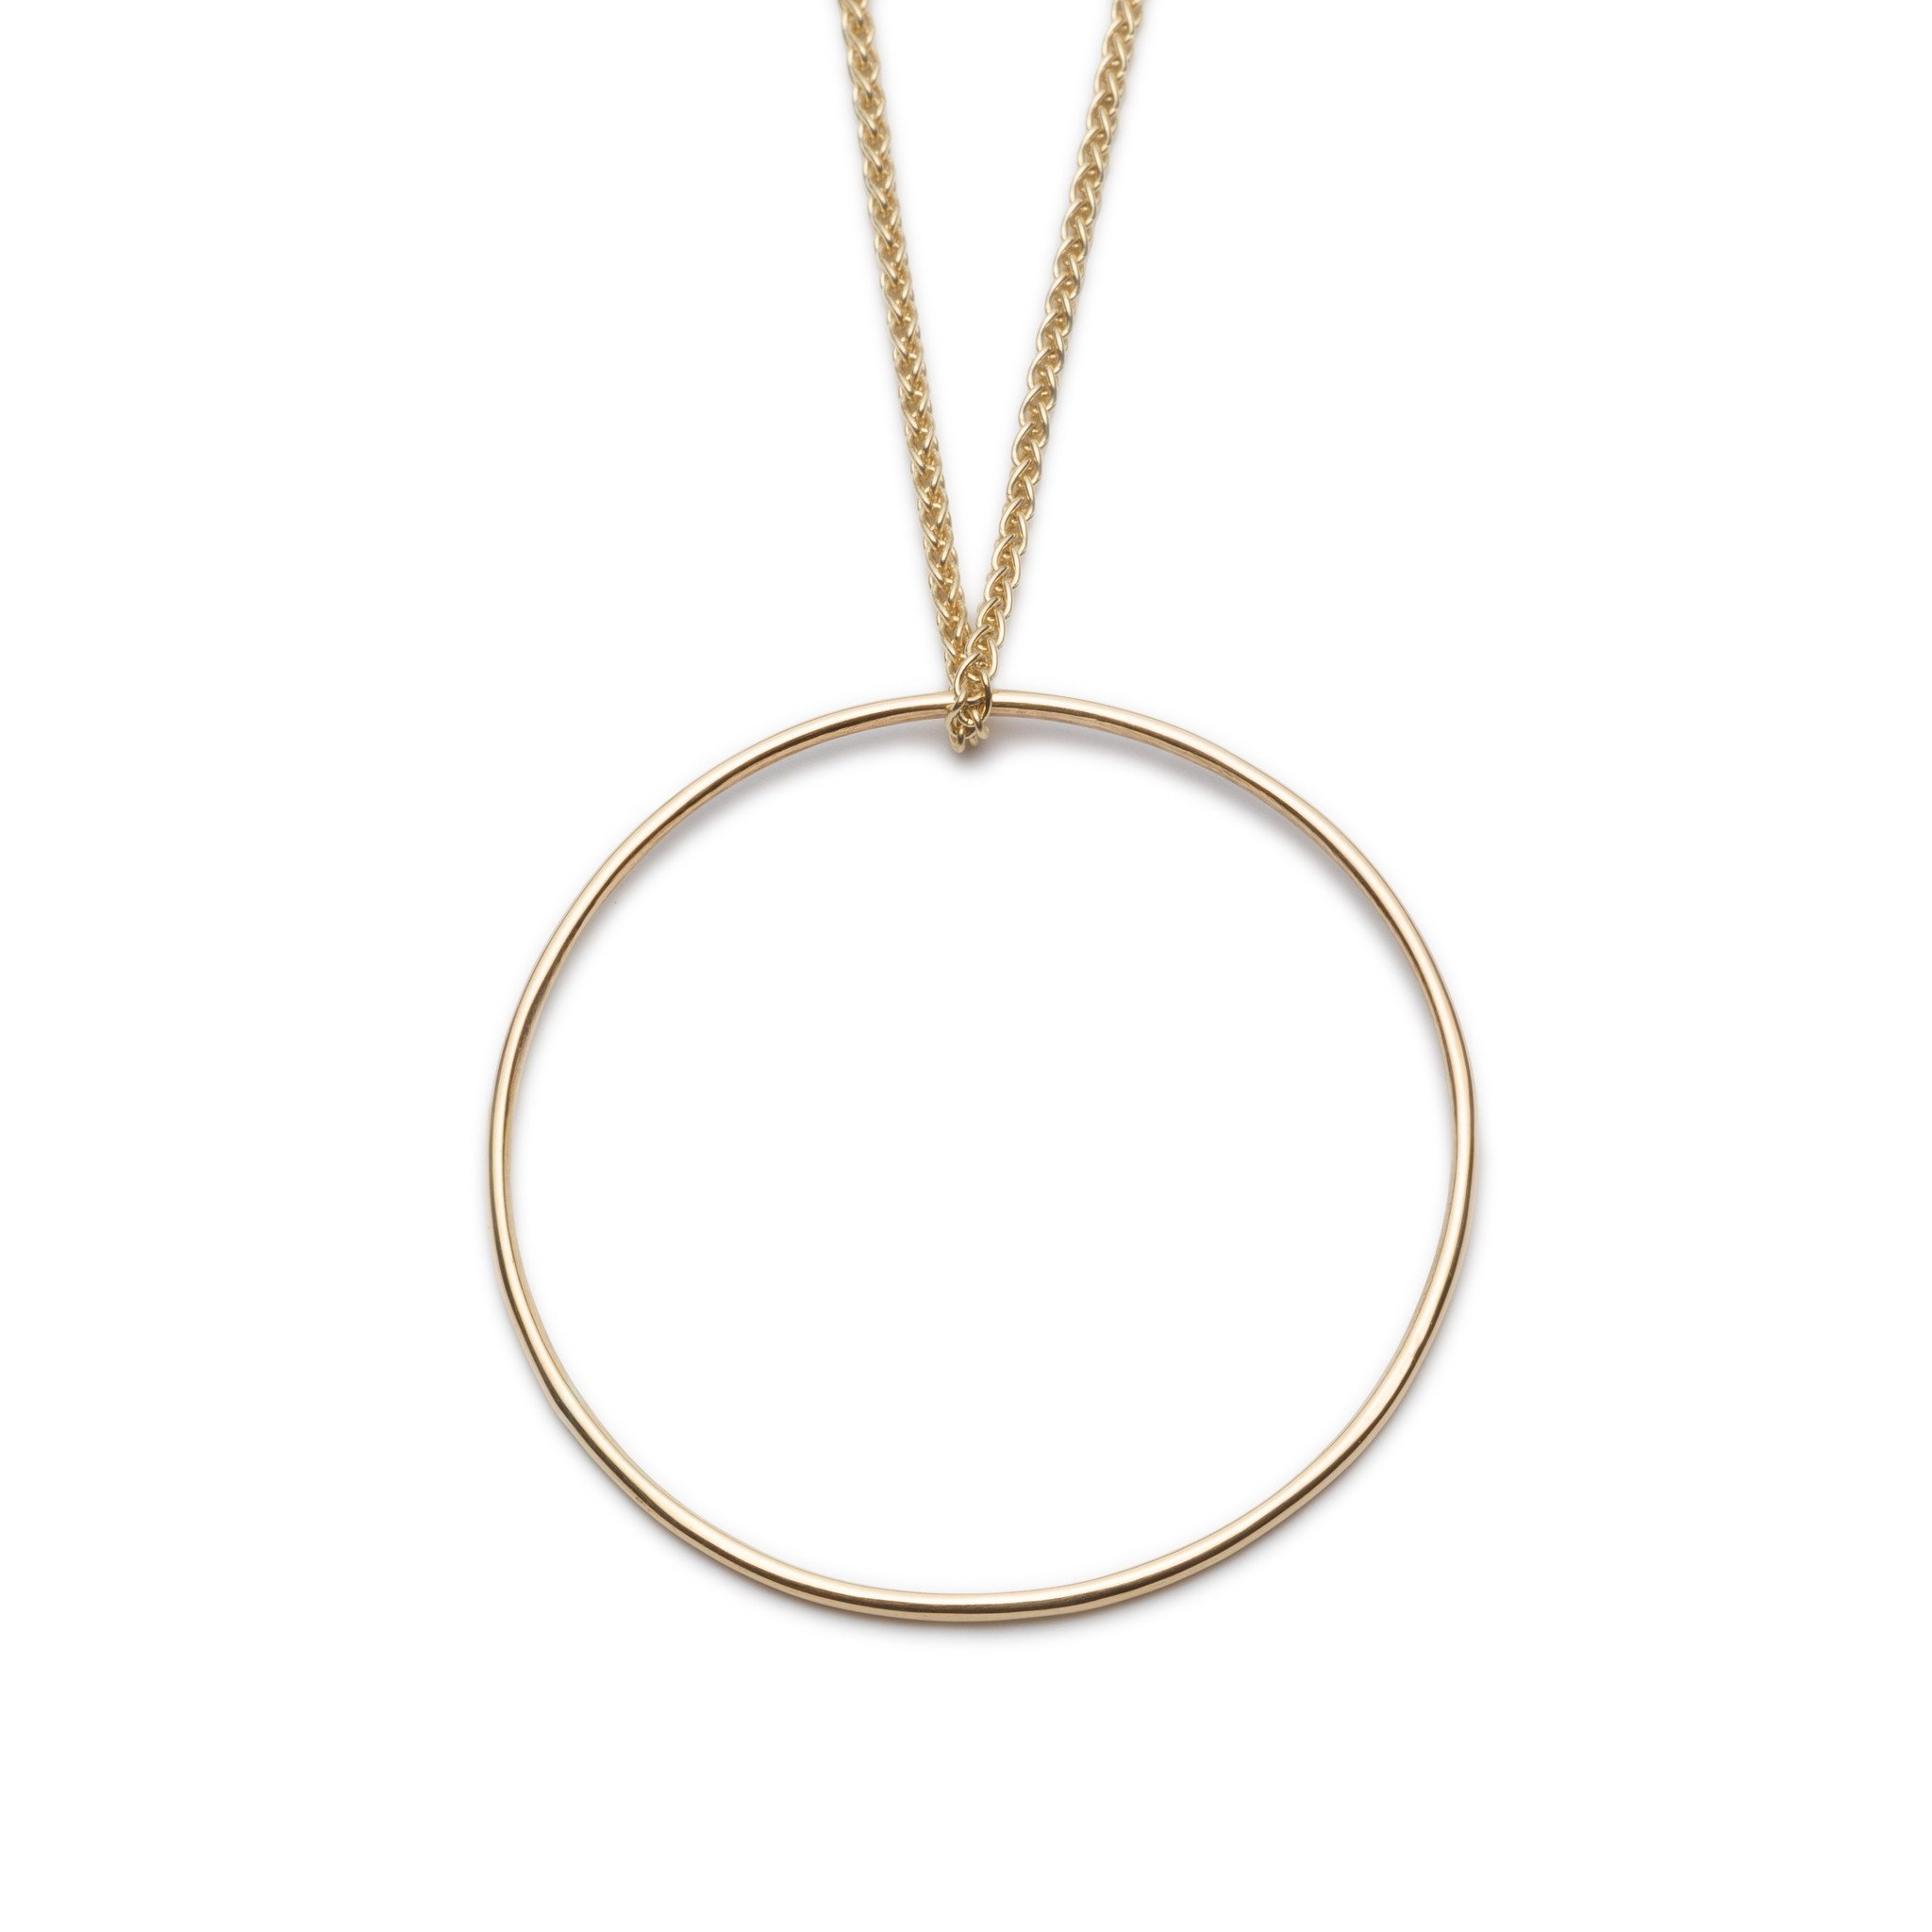 Large Circle Pendant. Material: 9ct Yellow Gold. Measurements: Pendant is 32mm outside diameter, spiga chain is 18